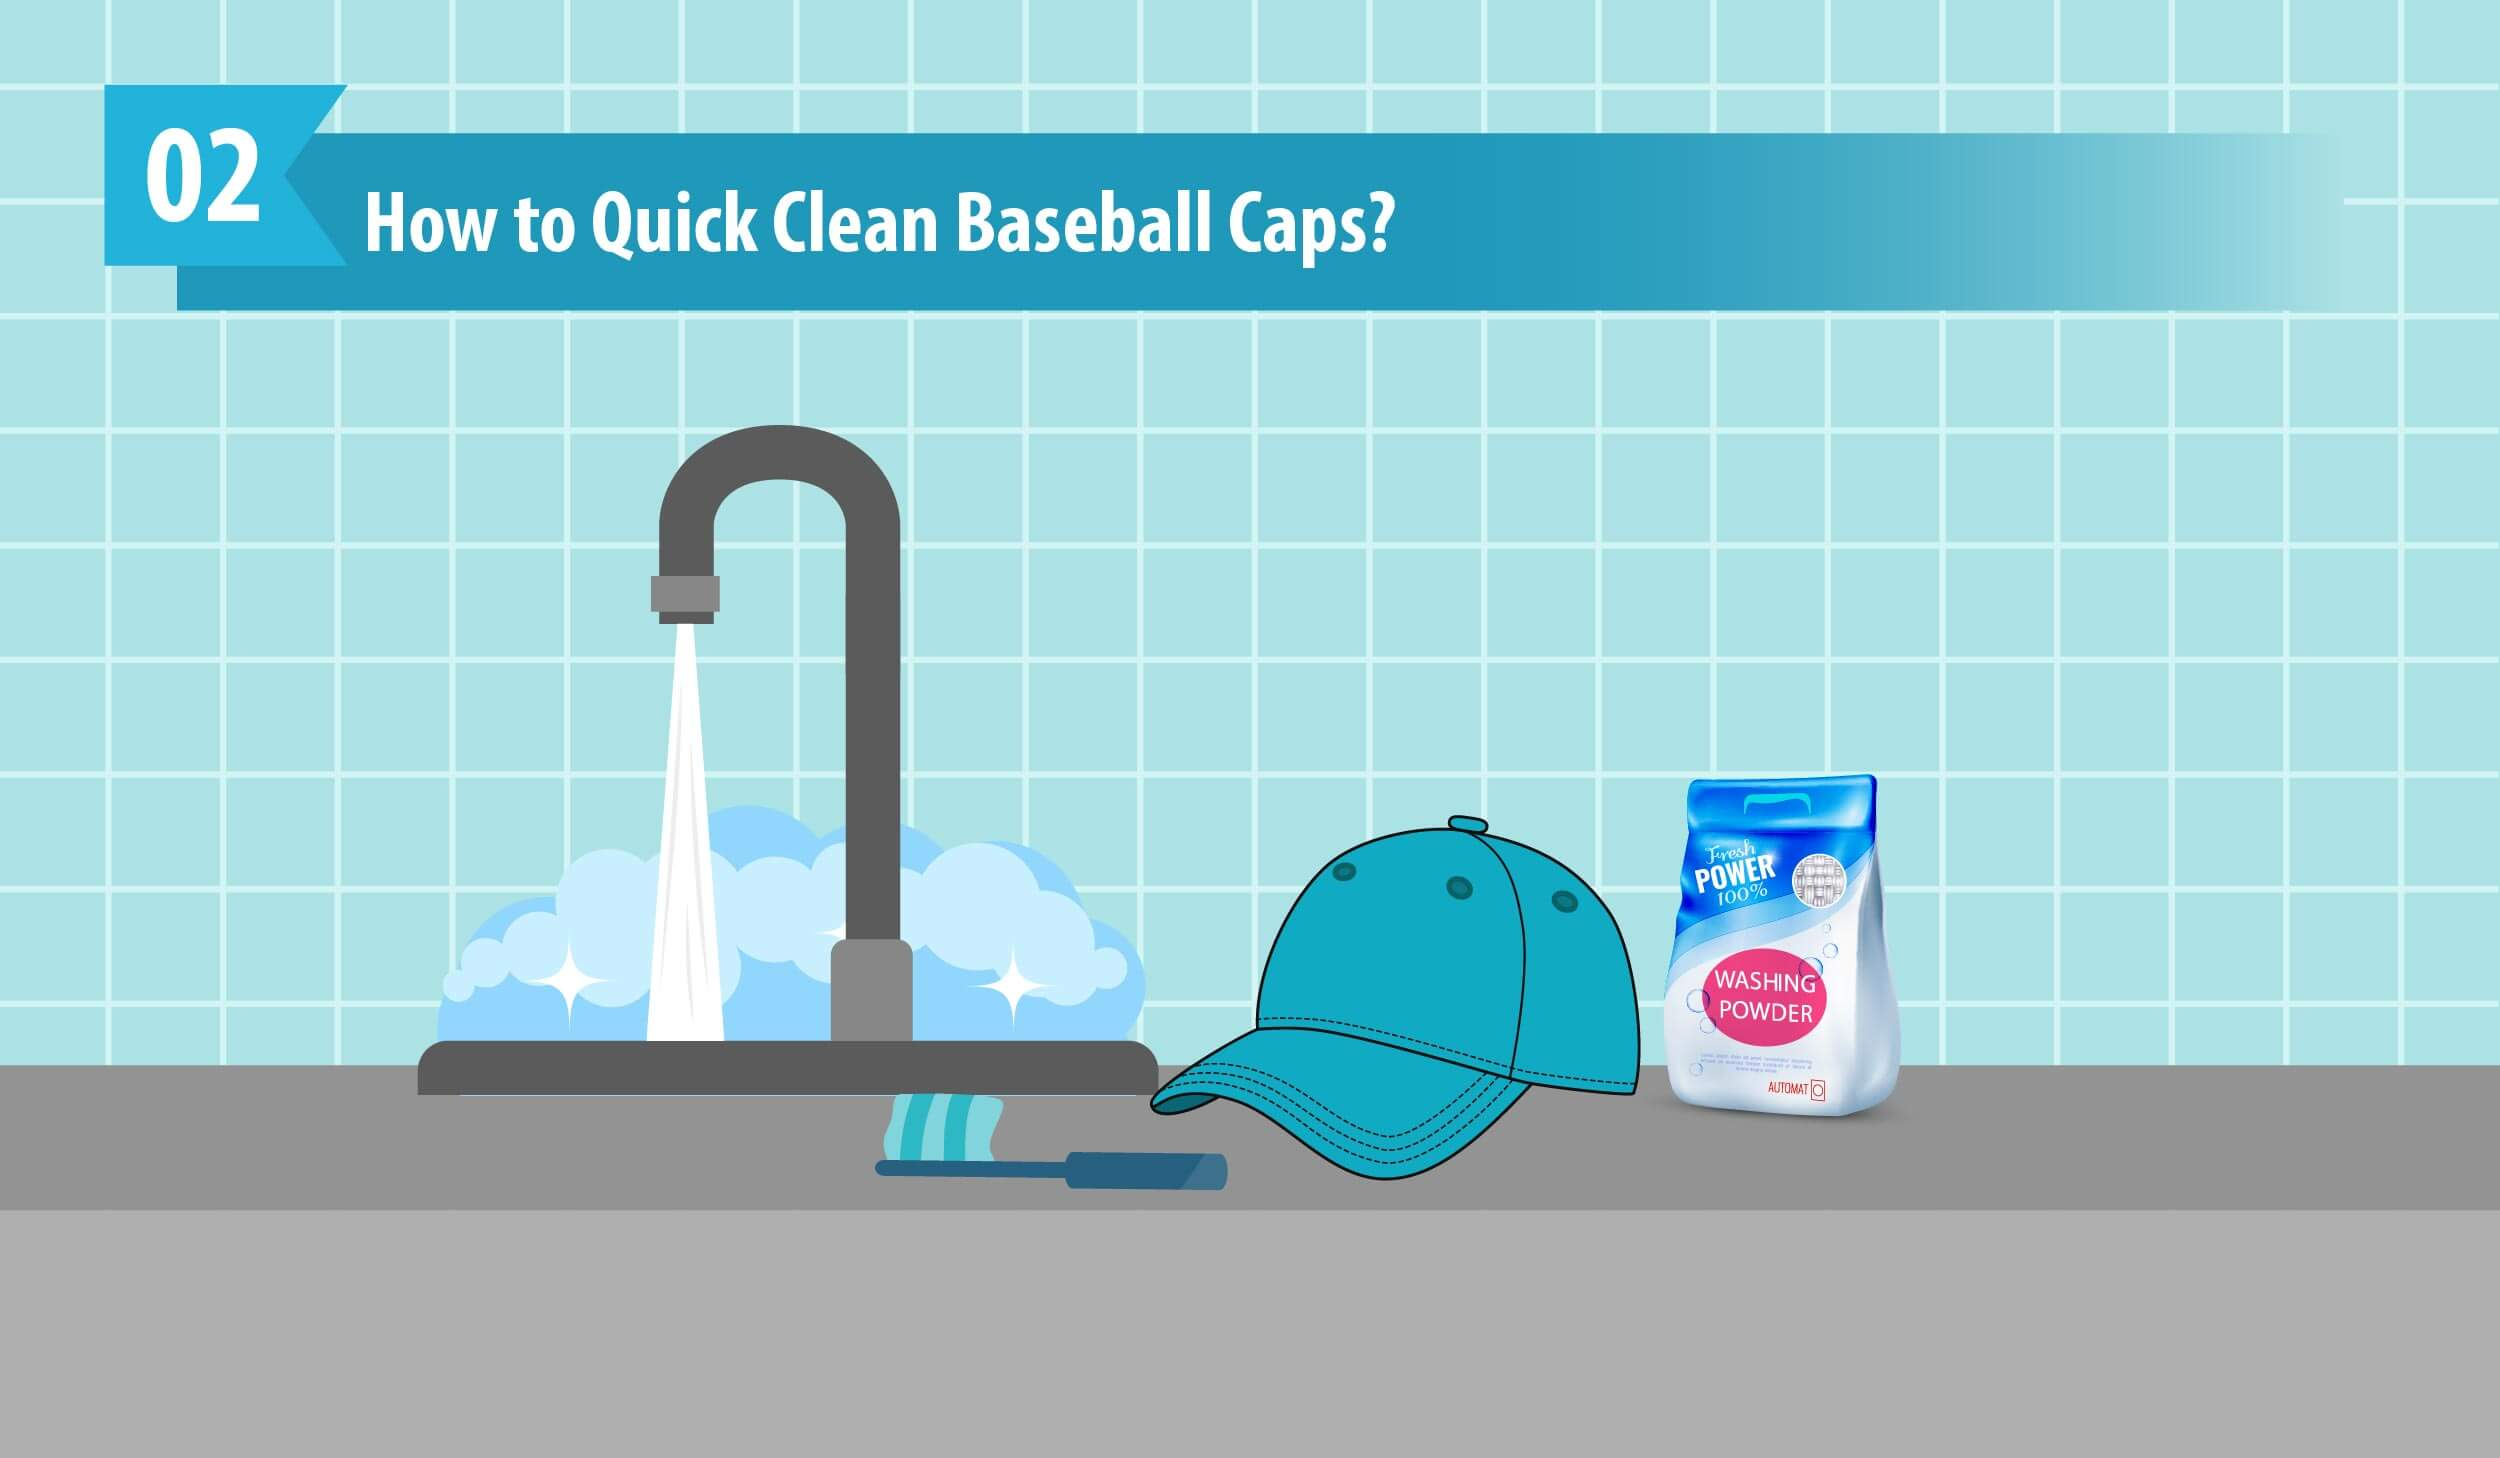 How to Quick Clean Baseball Caps